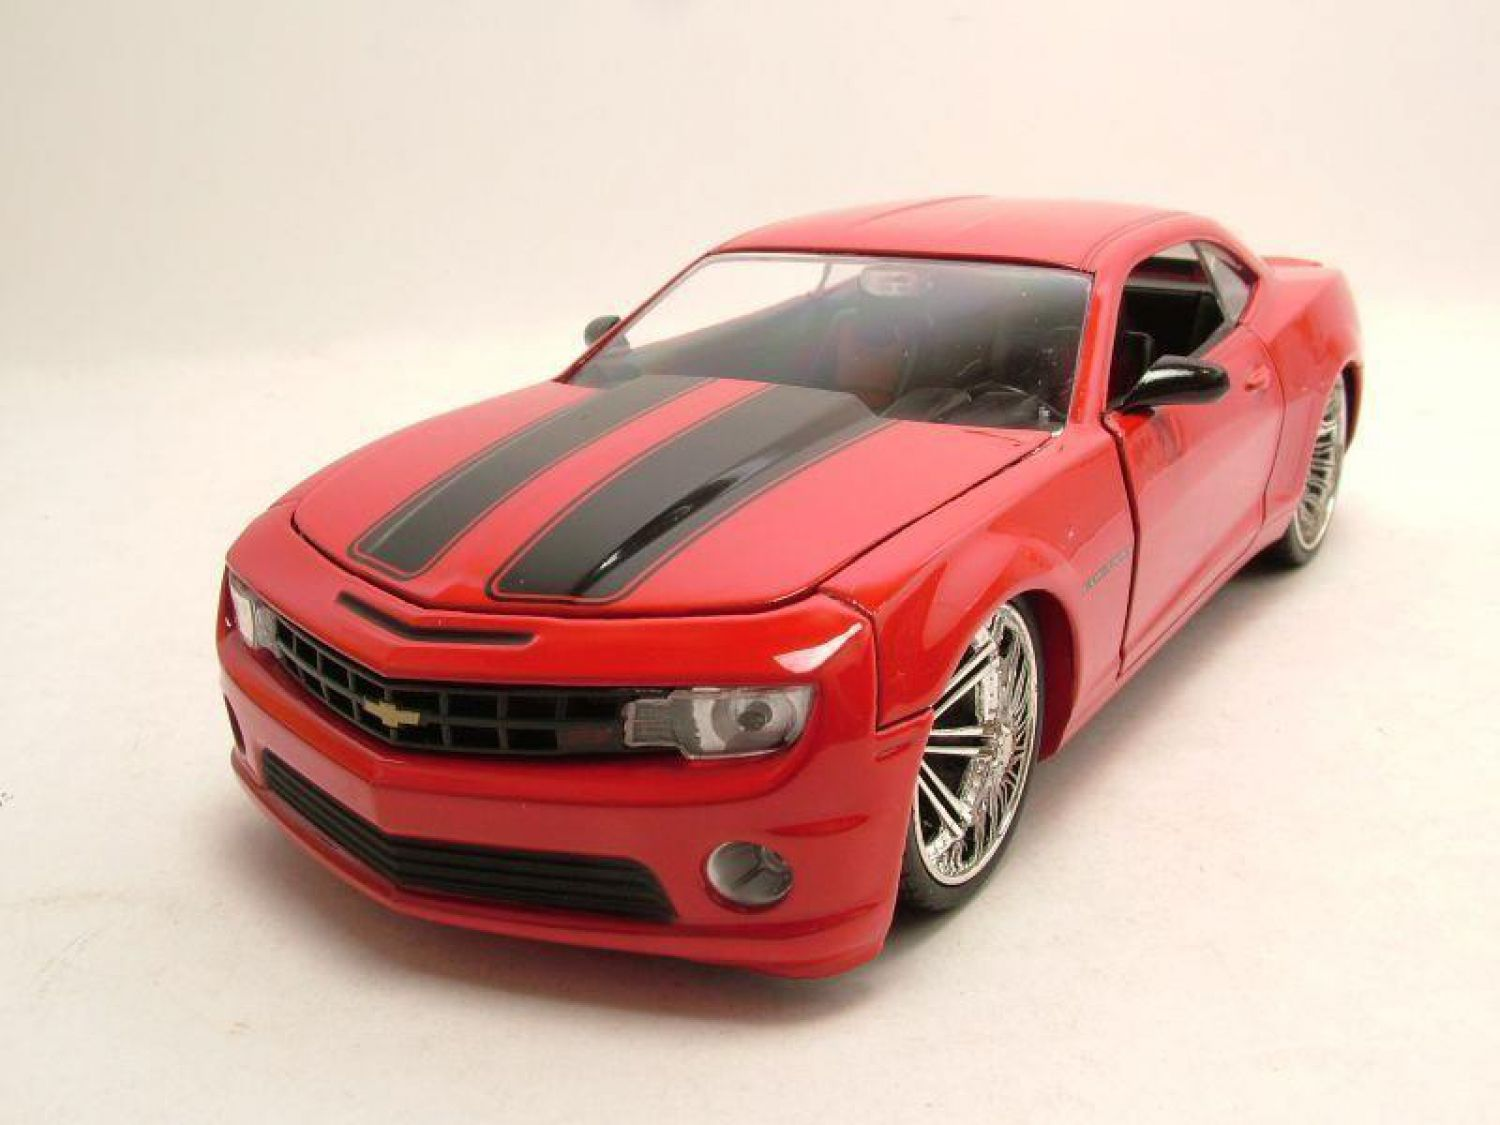 chevrolet camaro ss 2010 rouge noir mod le de voiture 1 24 jada toys ebay. Black Bedroom Furniture Sets. Home Design Ideas